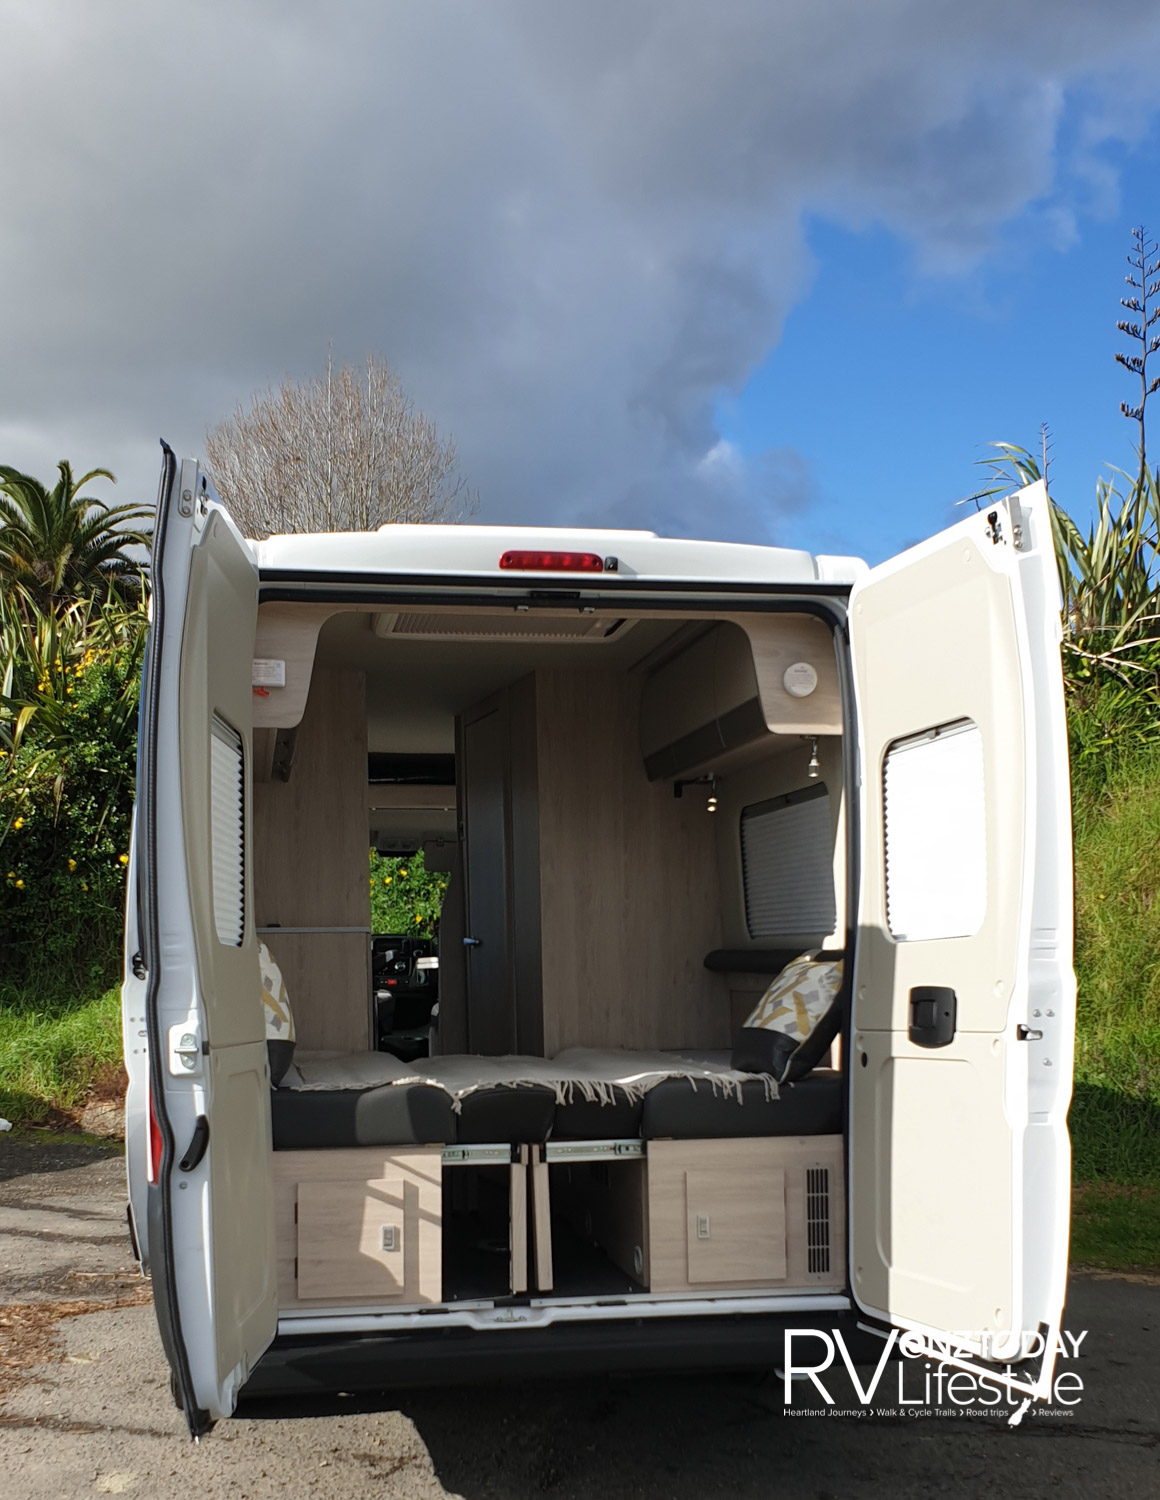 Rear doors open revealing rear lounge area made up to a large 1860mm x 1640mm full width bed. Step up on the back bumper to enter from the rear